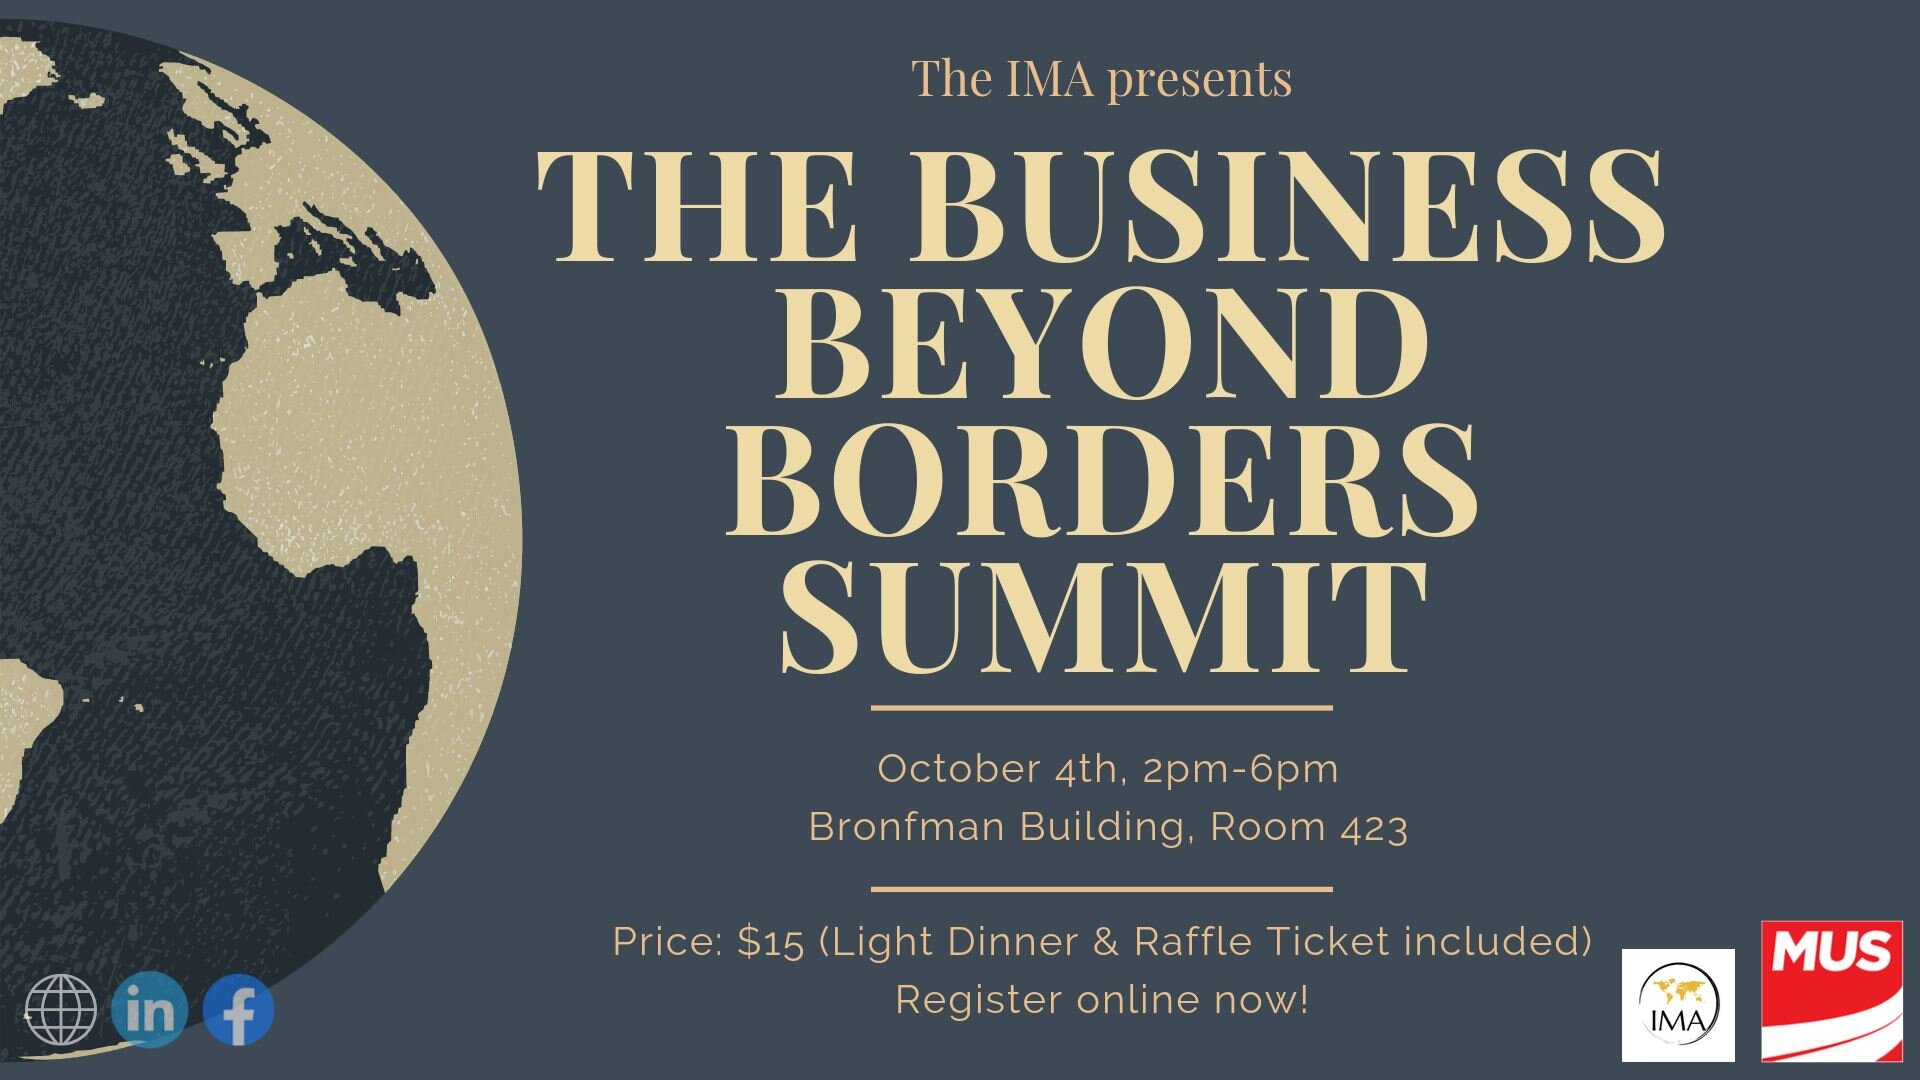 THE BUSINESS BEYOND BORDERS SUMMIT - Have you ever considered working abroad or for a global company?Do you dream of pursuing a career on an international scale?Are you passionate about international business?The International Management Association (IMA) is here for you! This year, the IMA will be hosting 'The Business Beyond Borders Summit' which will take place on October 4th in the heart of downtown Montreal. We have invited a diverse group of guest speakers who are representatives from a variety of business industries to share their experiences of working internationally. Through a series of seminars, each addressing important topics such as how to succeed in a cross-cultural workplace, how to cope with globalization and the importance of ethics in international business; the IMA hopes to shed light on the crucial issues with which global corporations are dealing with today. The speaker series will be followed by a networking session where participants and professionals will have a chance to interact and connect over a light dinner and refreshments. The cost of the conference is only $15 which includes your dinner and raffle ticket to win prizes each worth over $20! At the Business Beyond Borders Summit, you will have the opportunity to learn about the vast world of international business and the plethora of career opportunities awaiting you abroad. We urge you to seize this opportunity as it will greatly benefit your future career, no matter the industry or occupation. Don't miss out and register online! More details will be announced, so keep updated! ✧ IMPORTANT INFORMATION ✧ • DATE: Friday, October 4, 2019• TIME: 2:00pm - 6:00pm • LOCATION: Bronfman Building Room 423 (1001 Sherbrooke St. W, Montreal QC H3A 1G5)• PRICE: $15 (Light Dinner + Raffle Ticket Included)• DRESS CODE: Business AttireAll tickets are non-refundable.✧ REGISTER ONLINE NOW! ✧ https://www.eventbrite.ca/e/the-business-beyond-borders-summit-tickets-72564774193?fbclid=IwAR1WDpo_MEaW0dGSkrLVIP